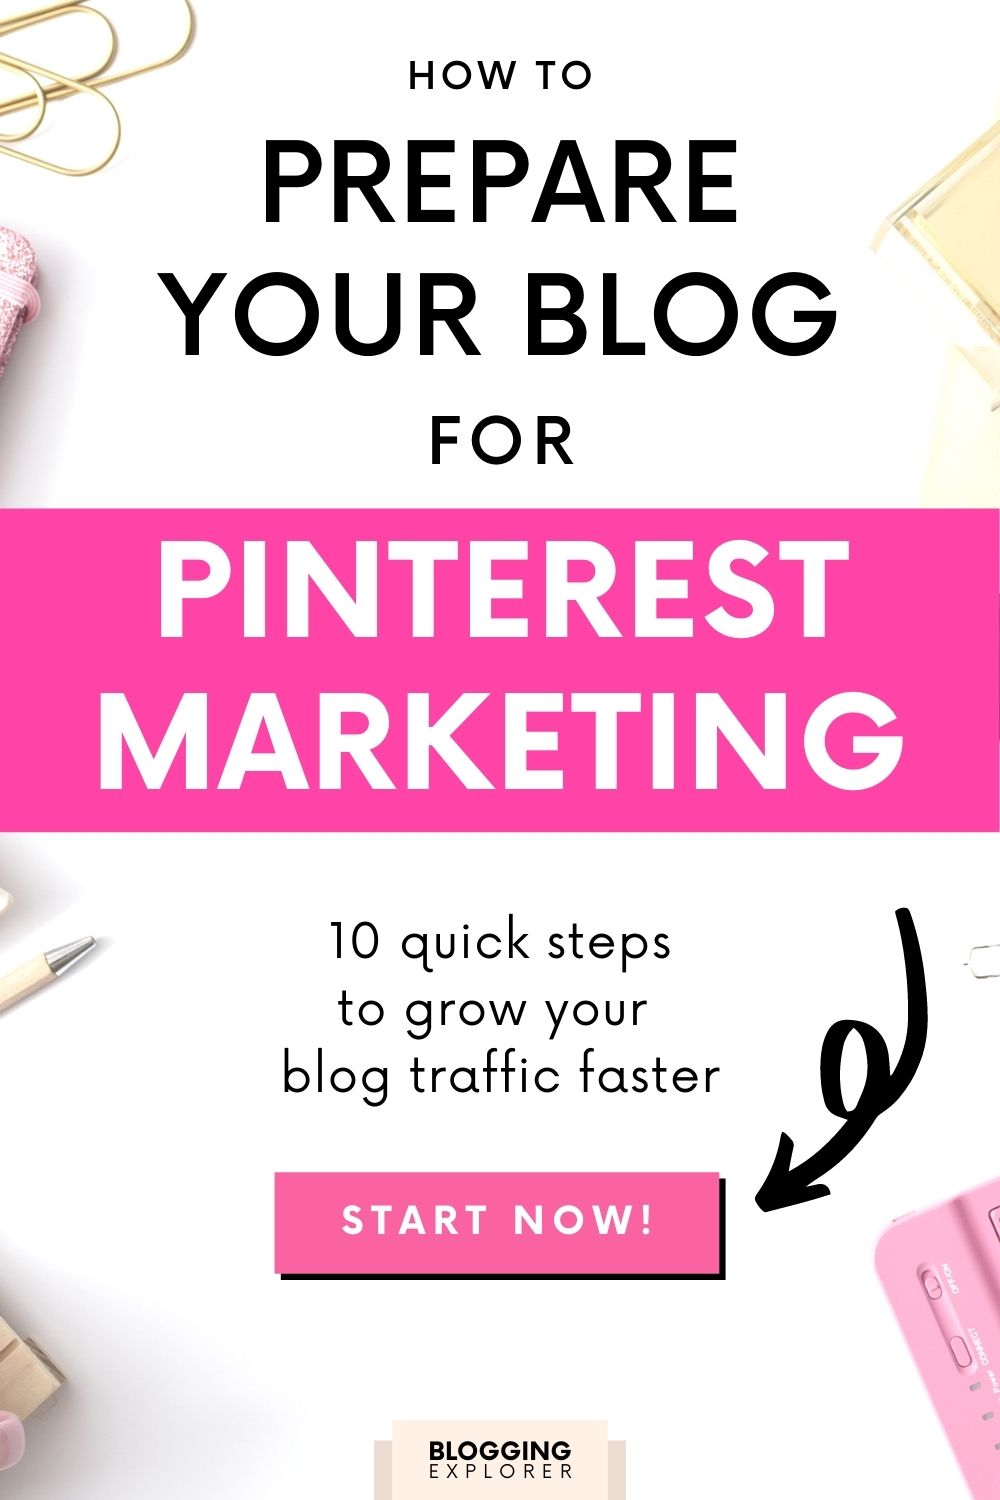 8 Easy Steps to Prepare Your Blog for Pinterest Marketing Success